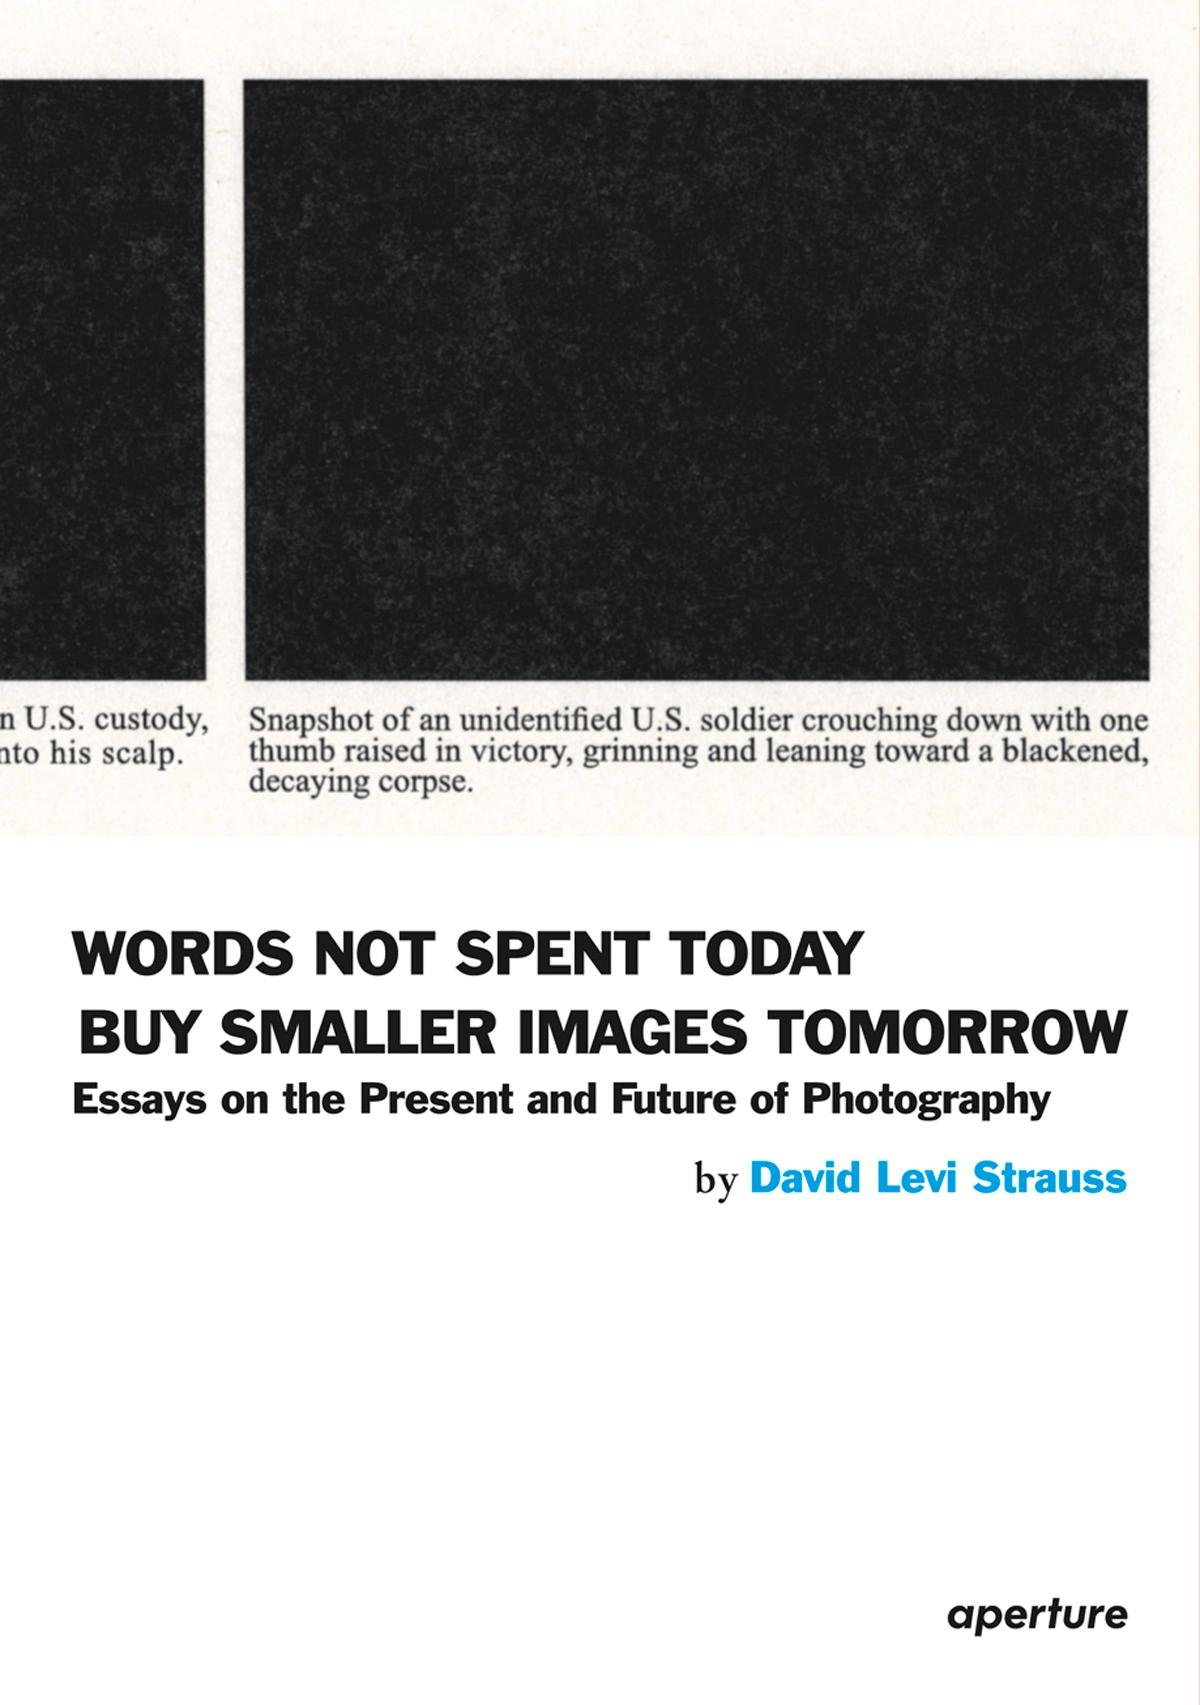 david-levi-strauss-words-not-spent-today-buy-smaller-images-tomorrow-essays-on-the-present-and-future-of-photography-aperture